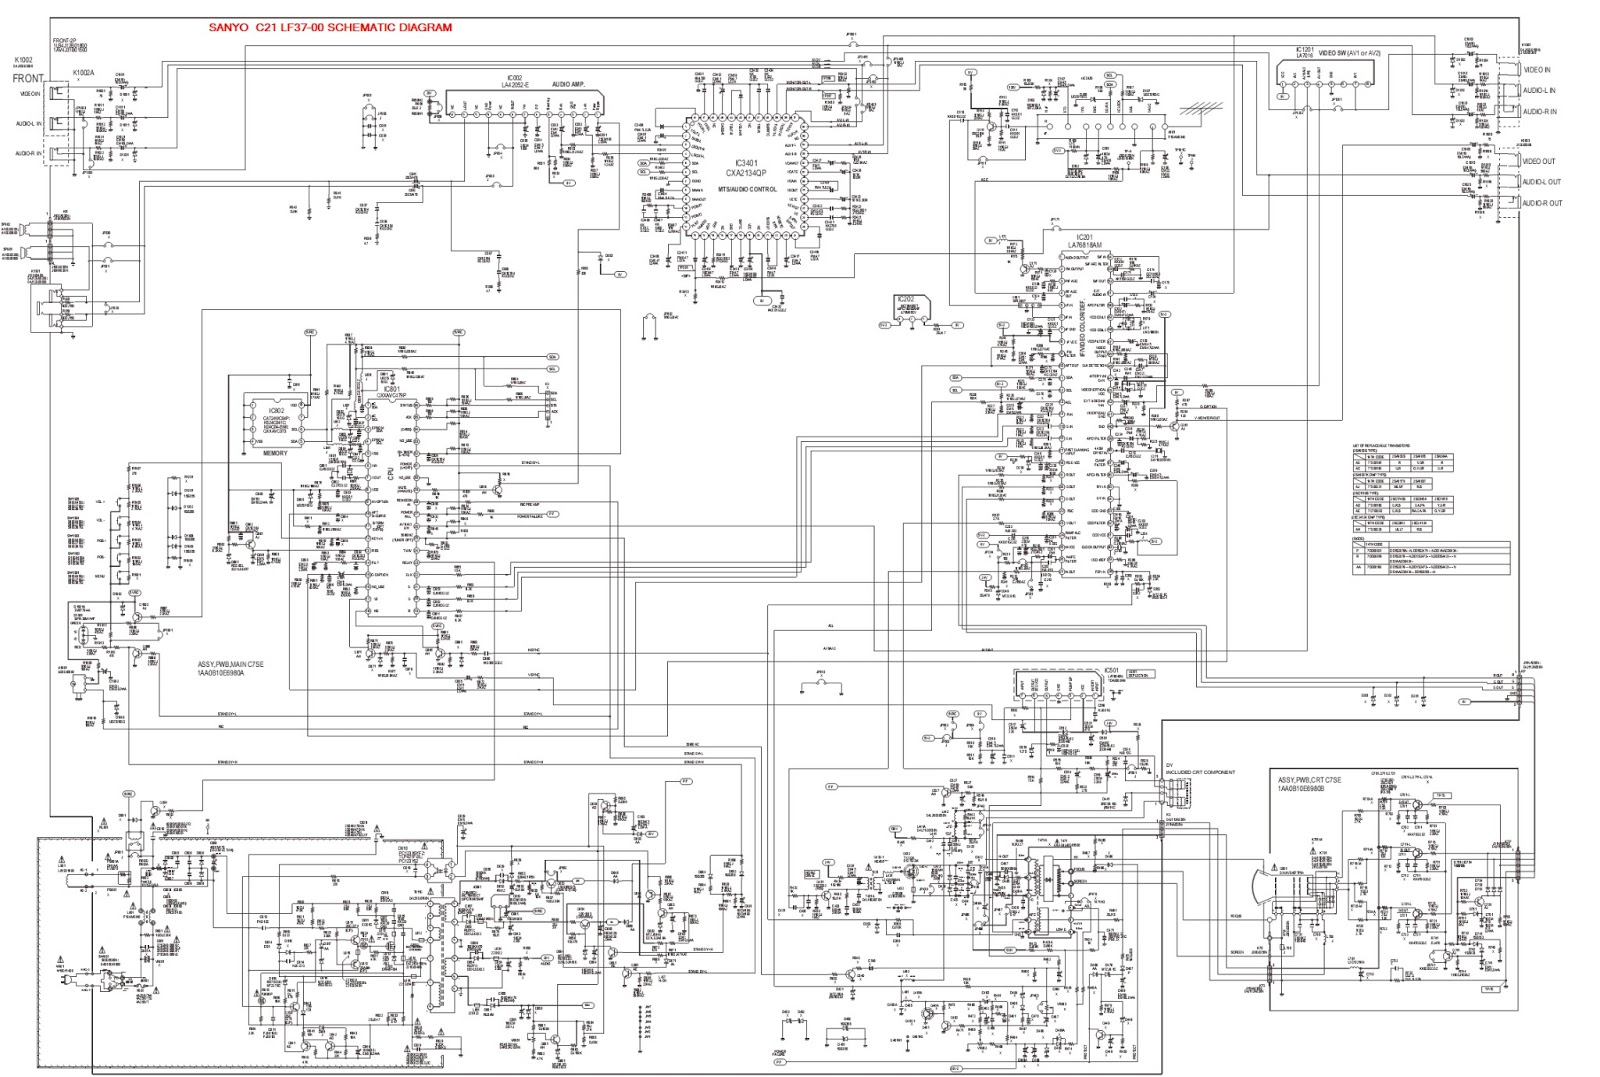 hight resolution of sanyo tv circuit diagram wiring diagram third levelsanyo c21lf37 ctv schematic diagram circuit diagram